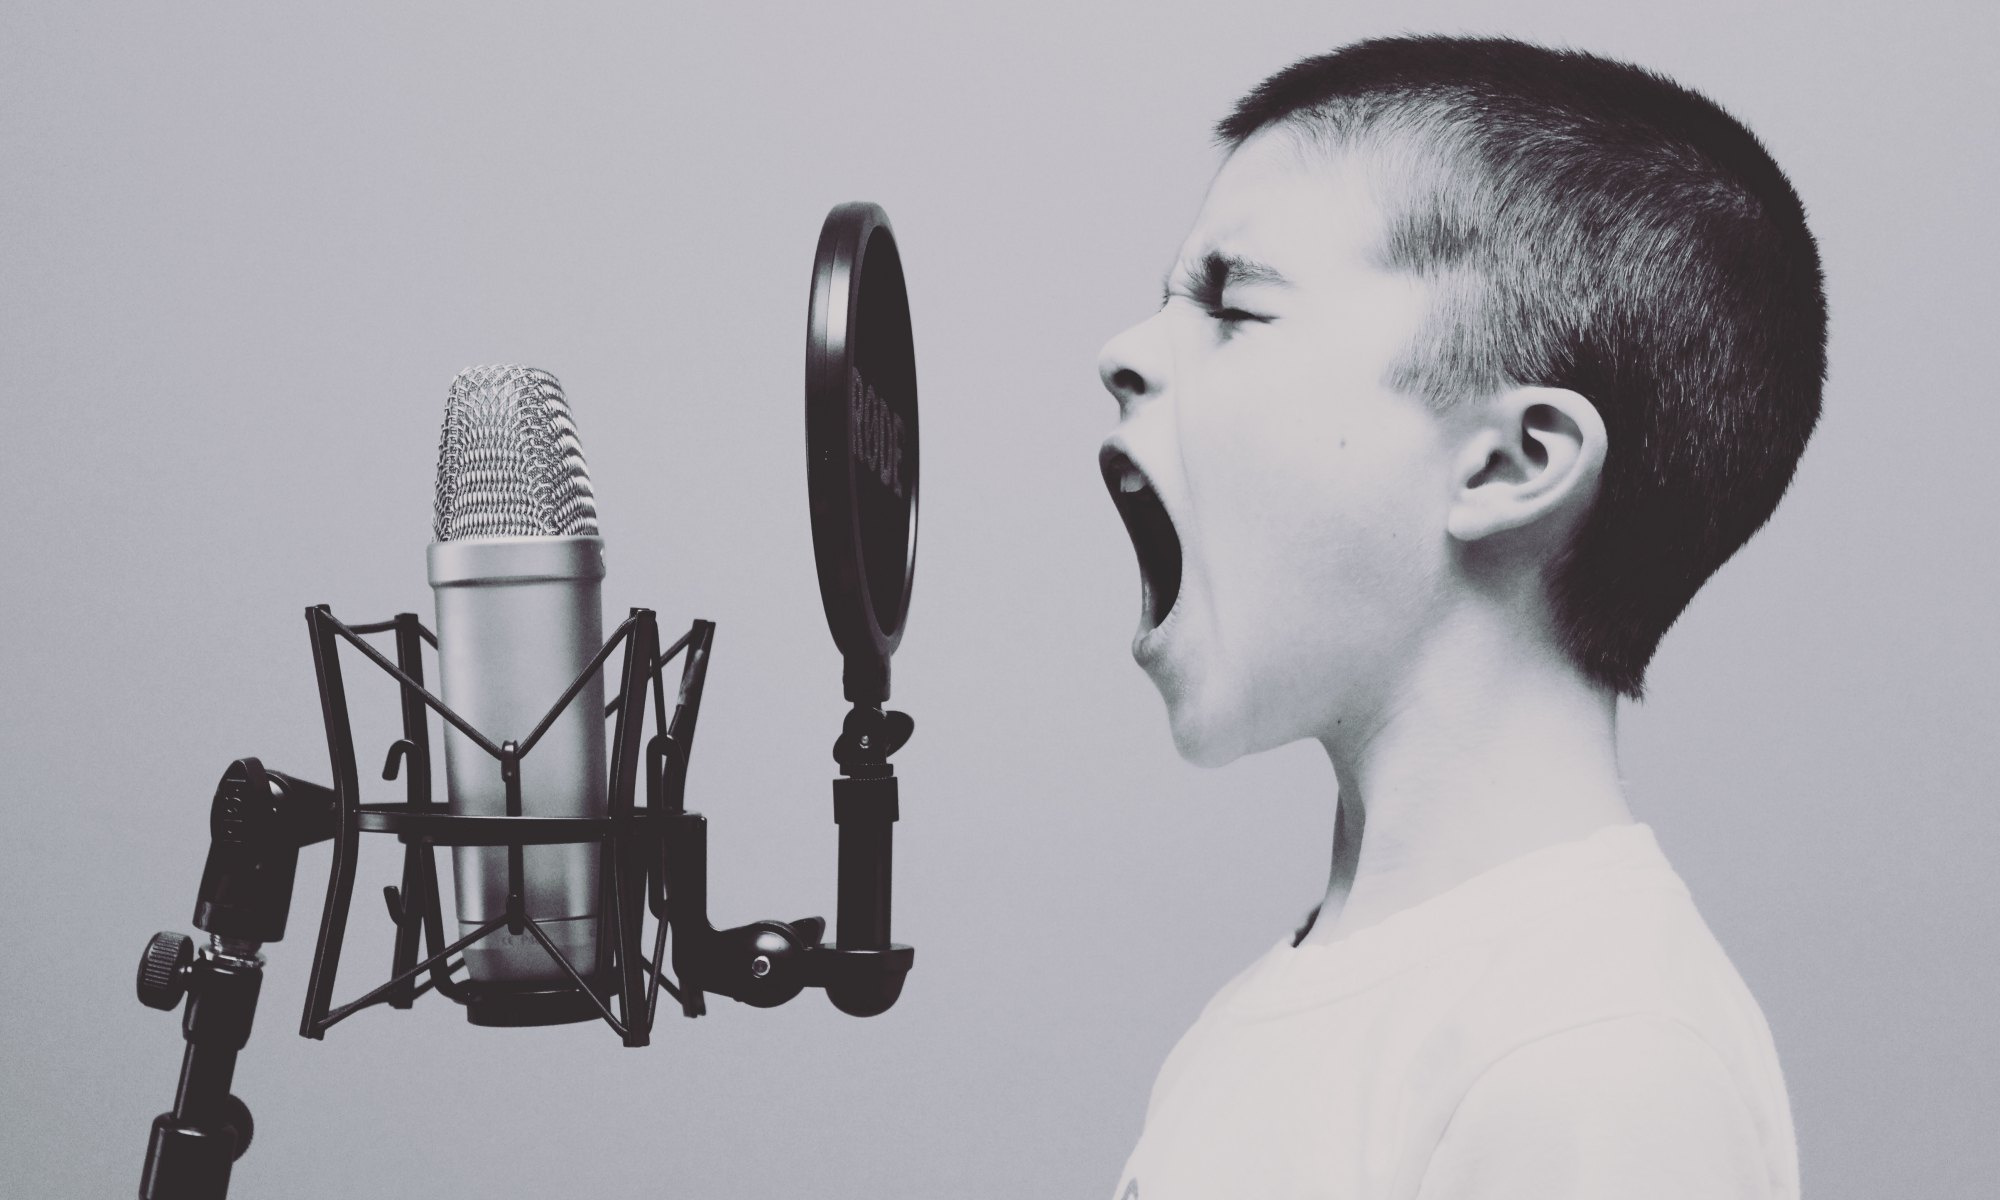 Singing with Passion and Emotion